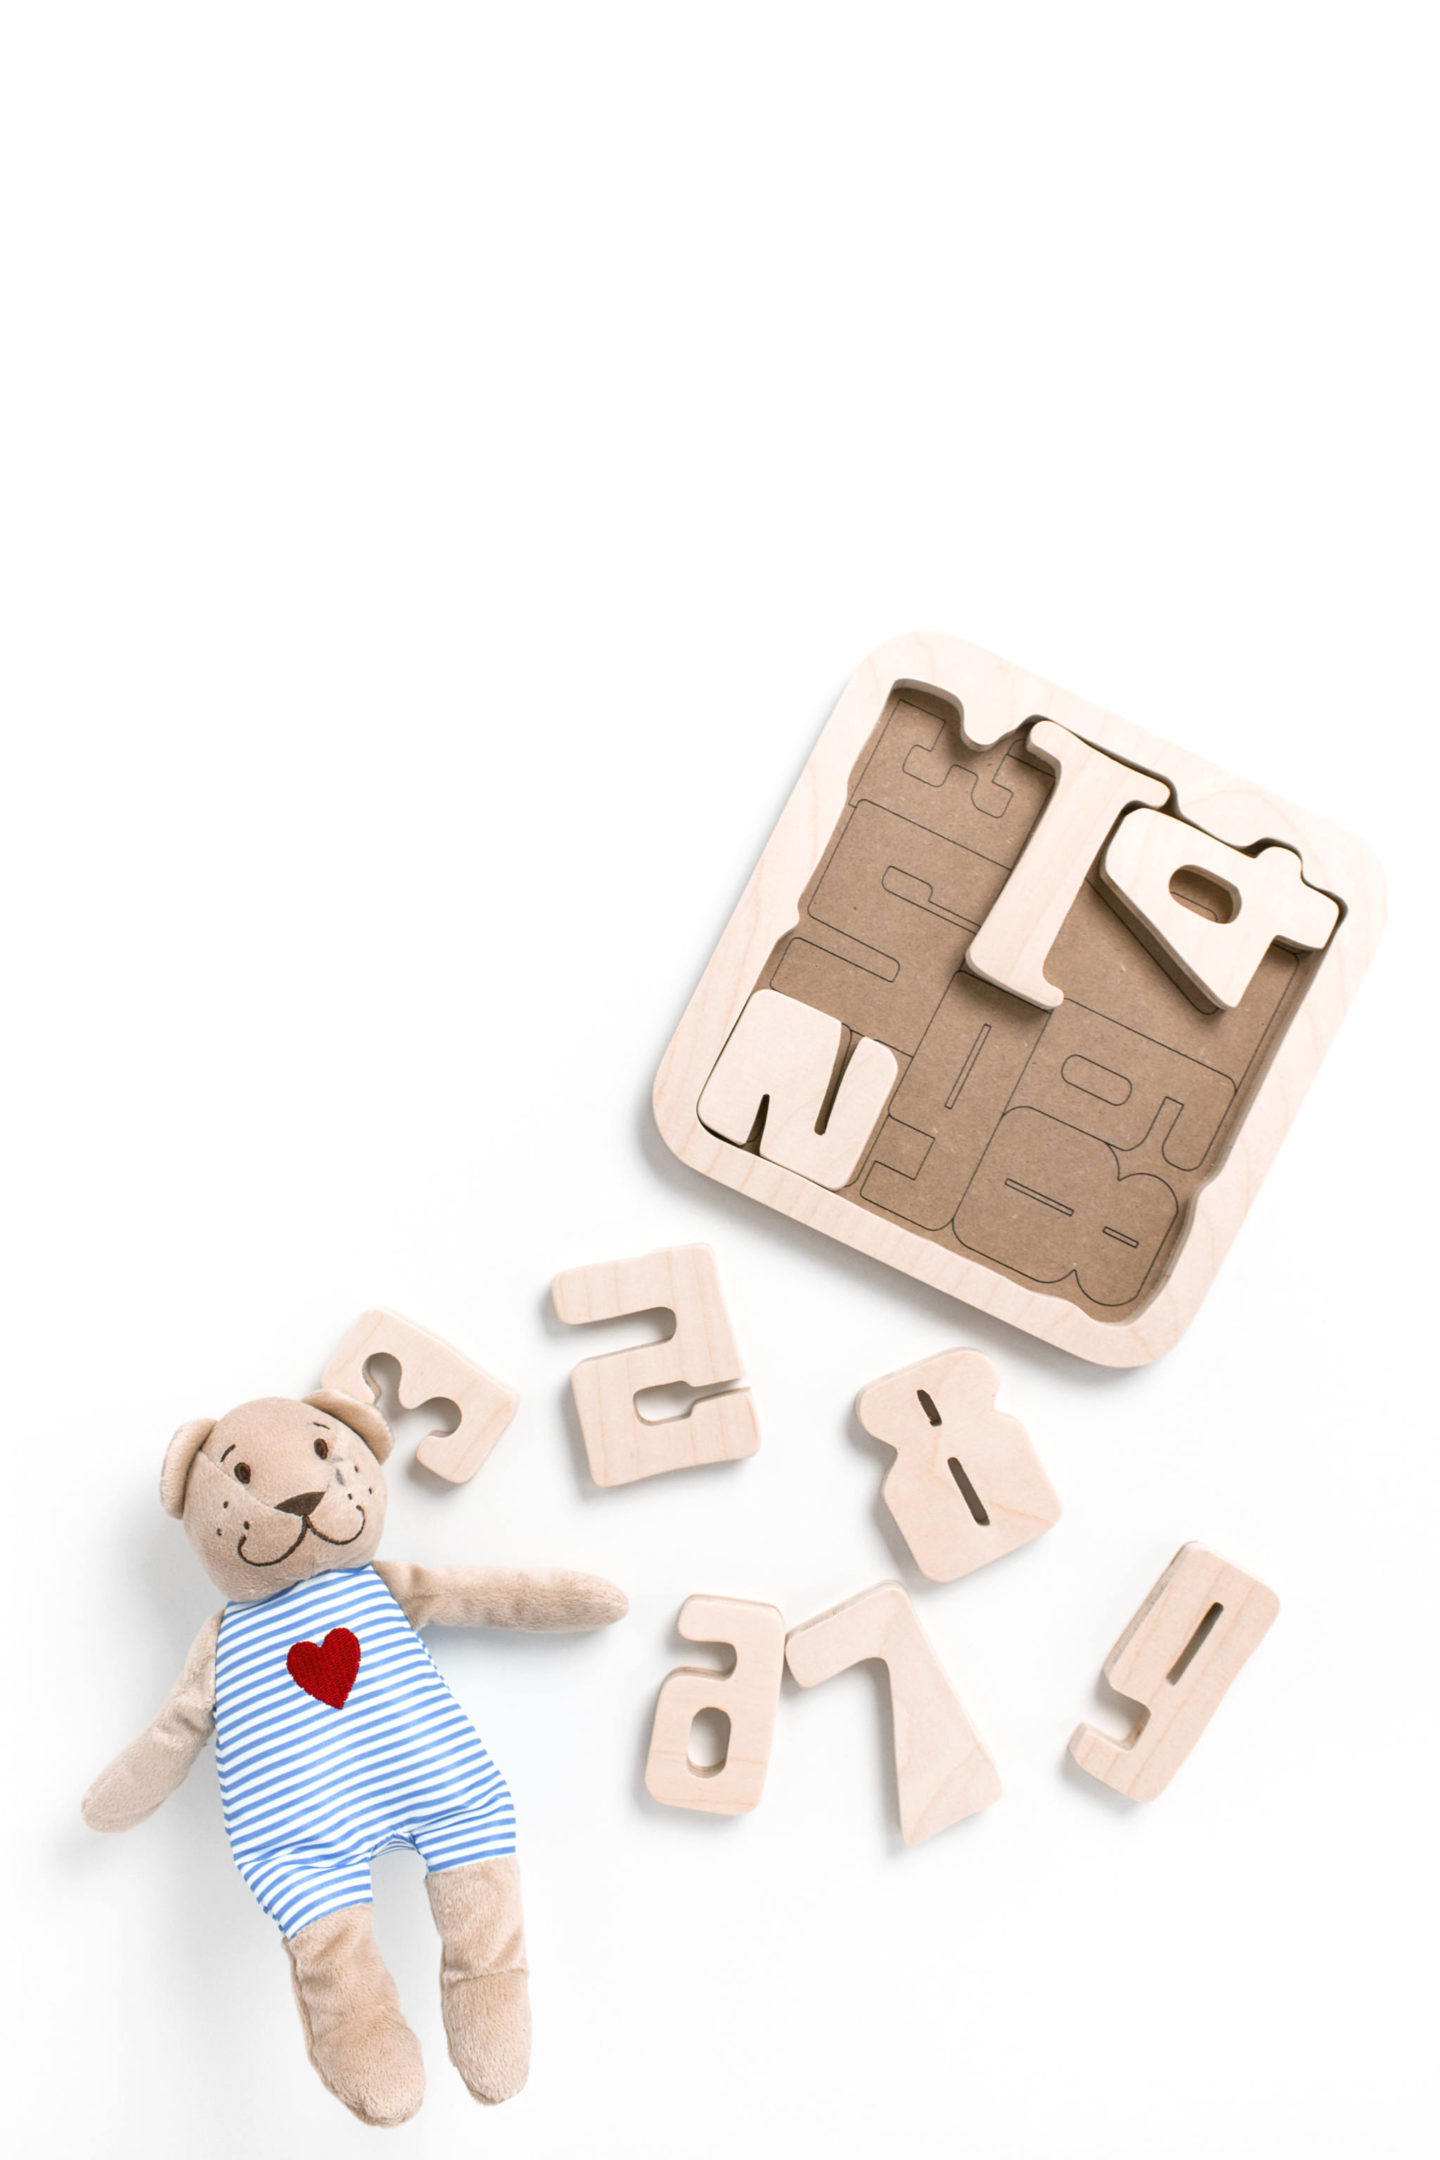 teddy bear and children's puzzle